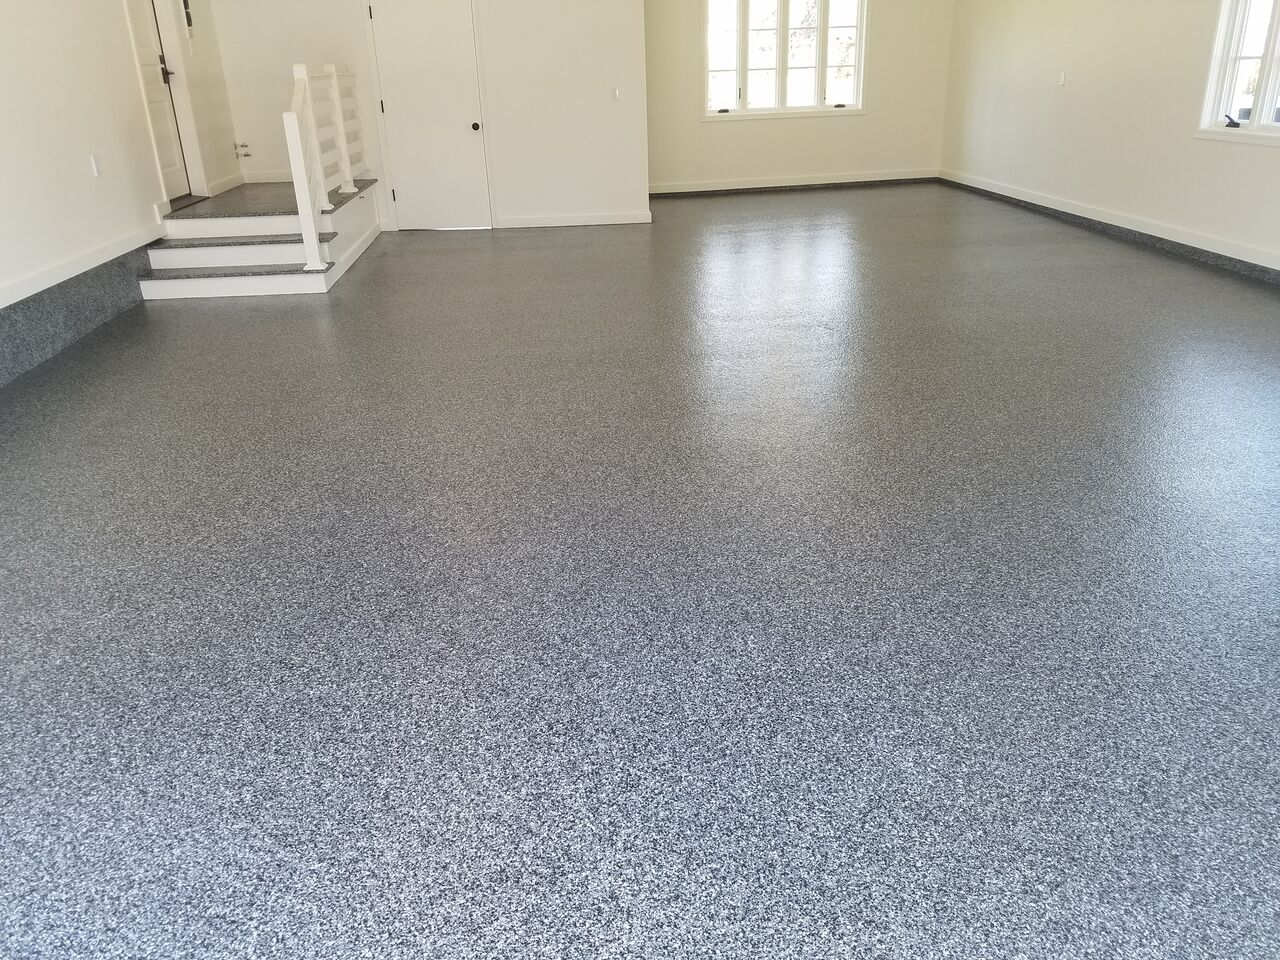 Garage Epoxy With Flakes Top 5 Ways Epoxy Can Positively Impact Your Home S Concrete Floors